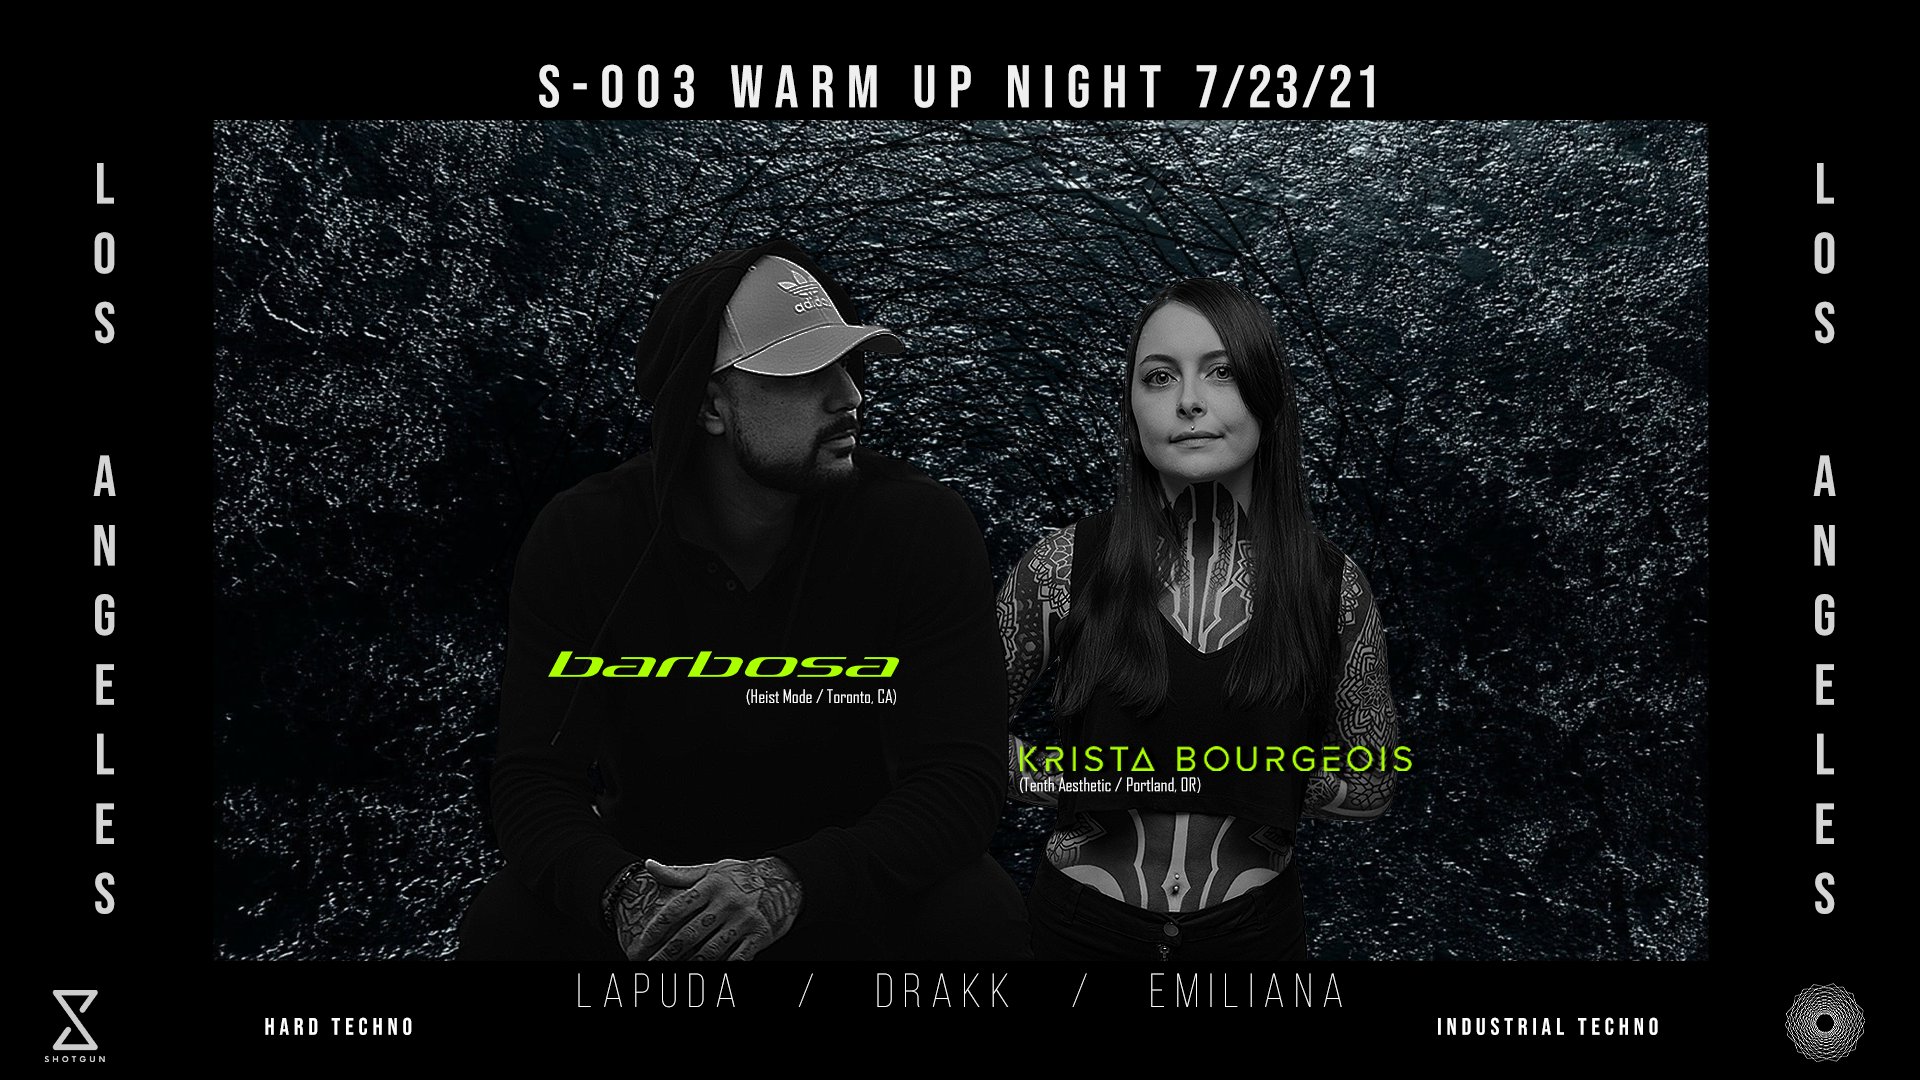 S-003 Warm Up Night ft. Barbosa, Krista Bourgeois + More